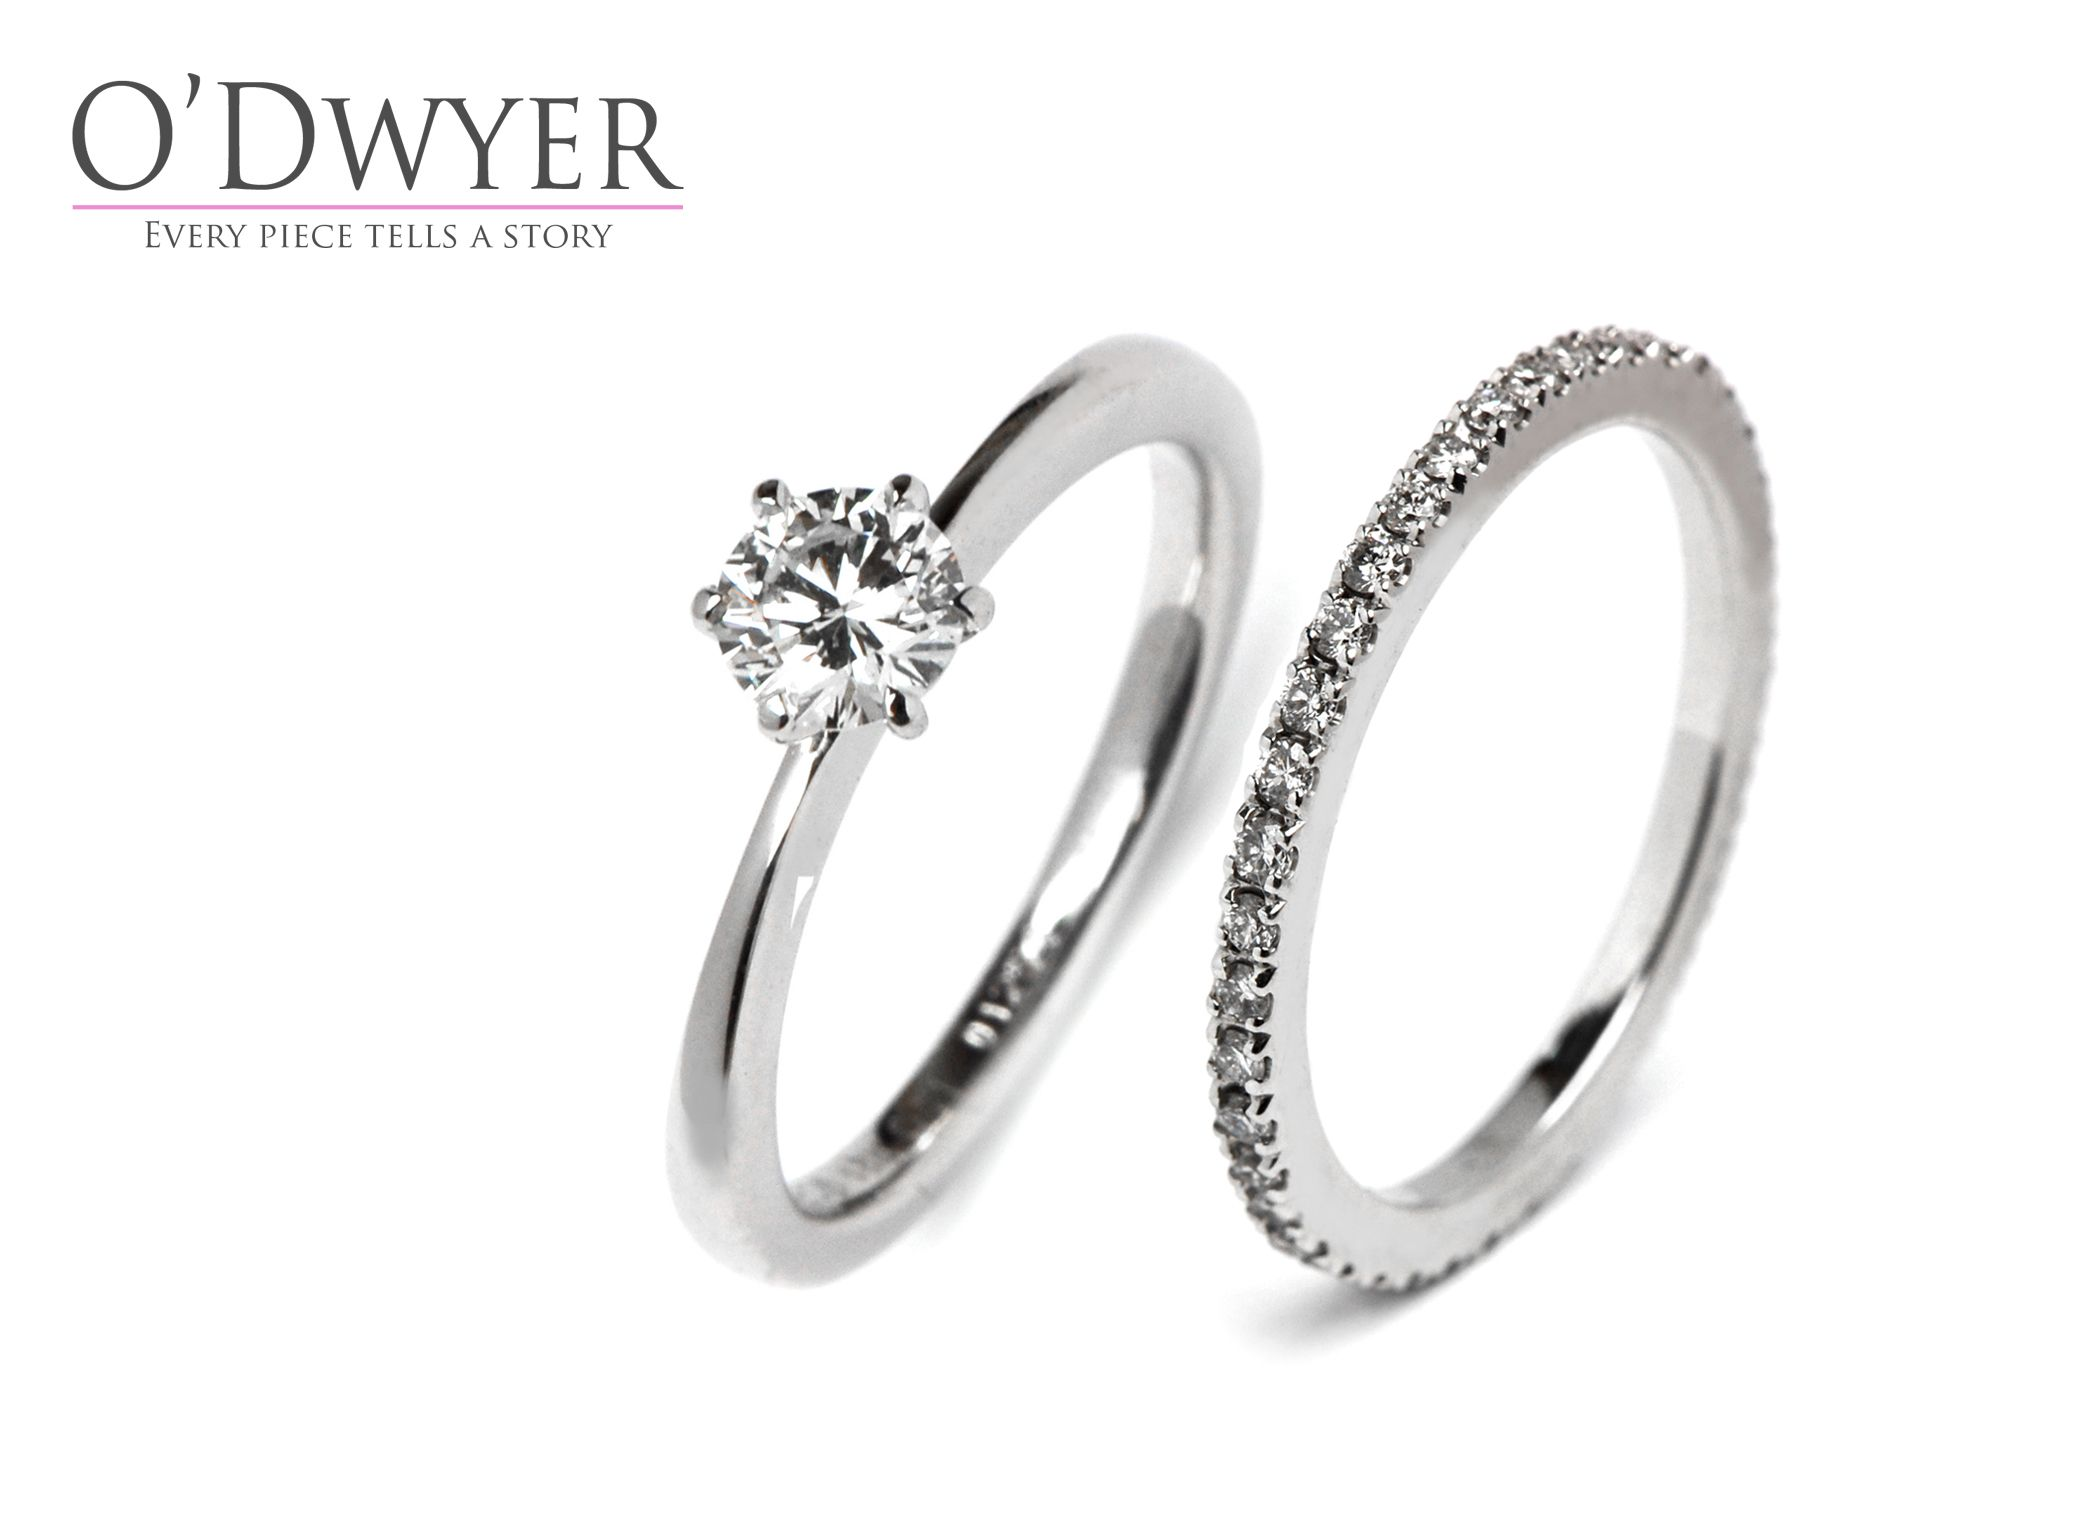 Solitaire Ring - 18ct white gold rings with diamonds. Förlovningsring  Vigselring 7c34110d452f6